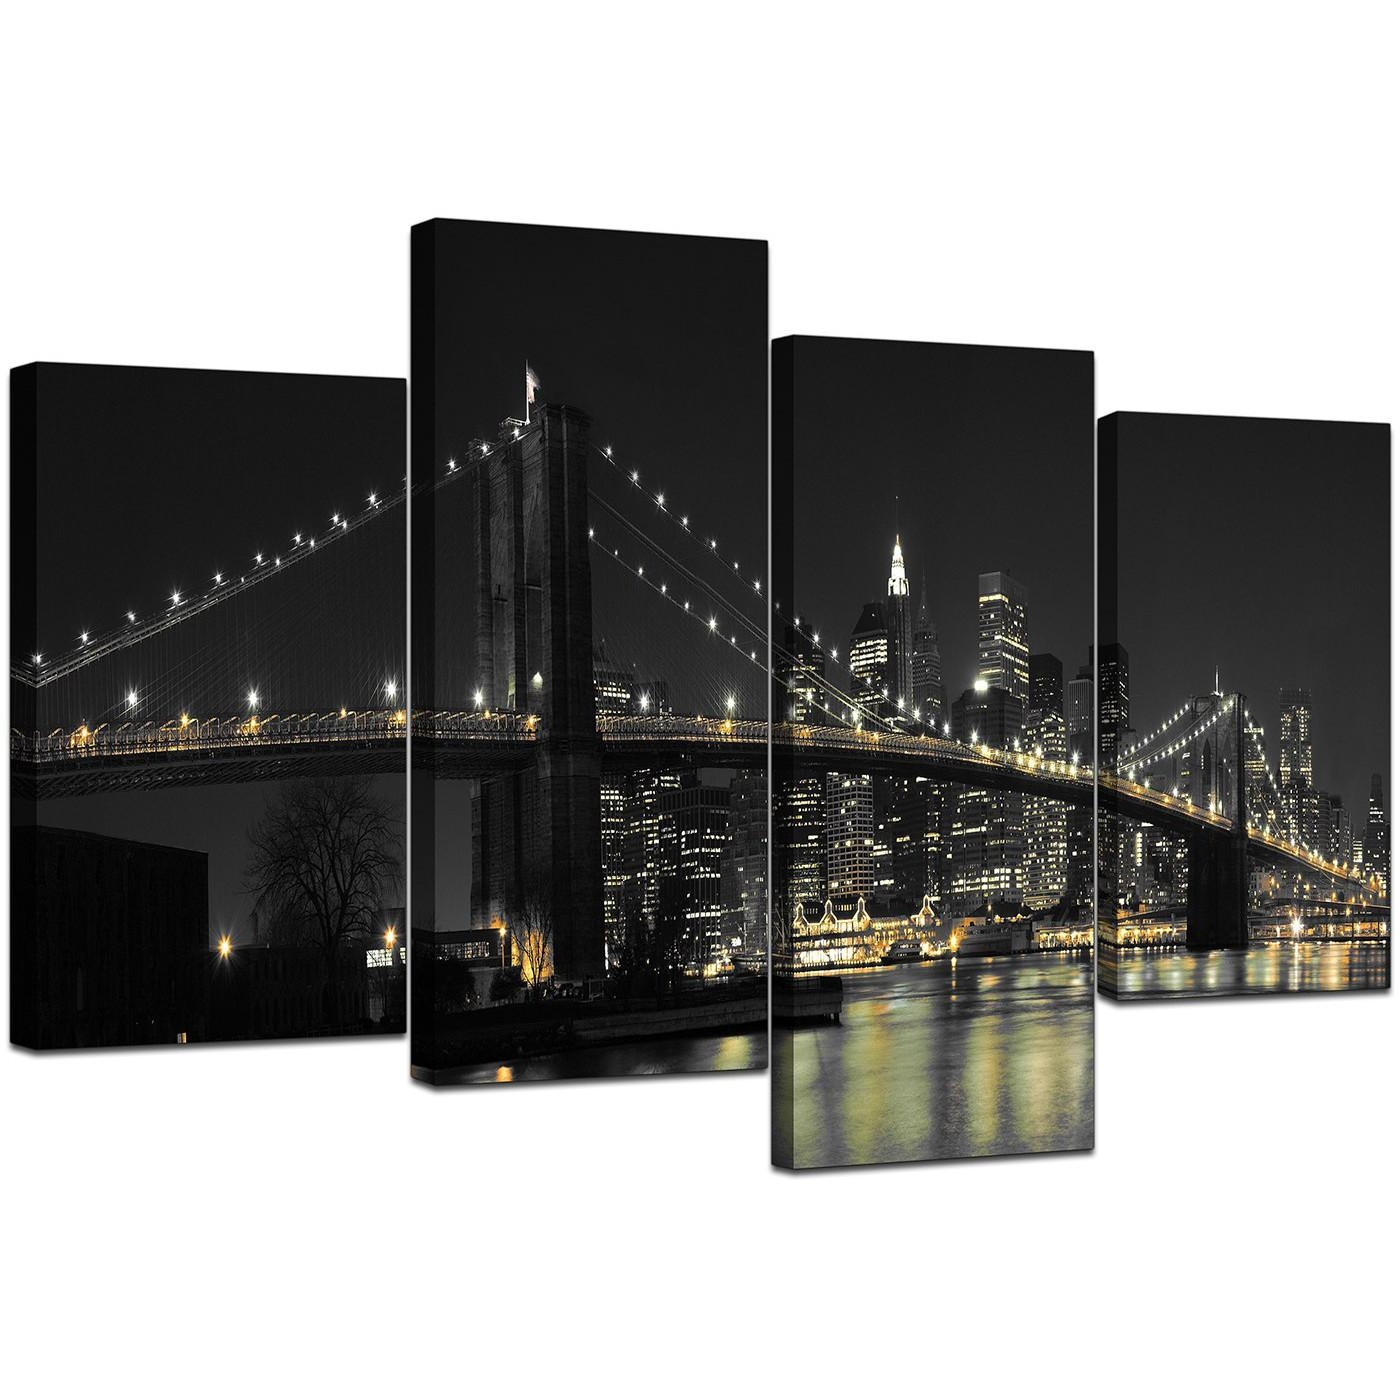 Canvas Wall Art Of New York For Your Office – 4 Part In New York Skyline Canvas Black And White Wall Art (Image 4 of 20)